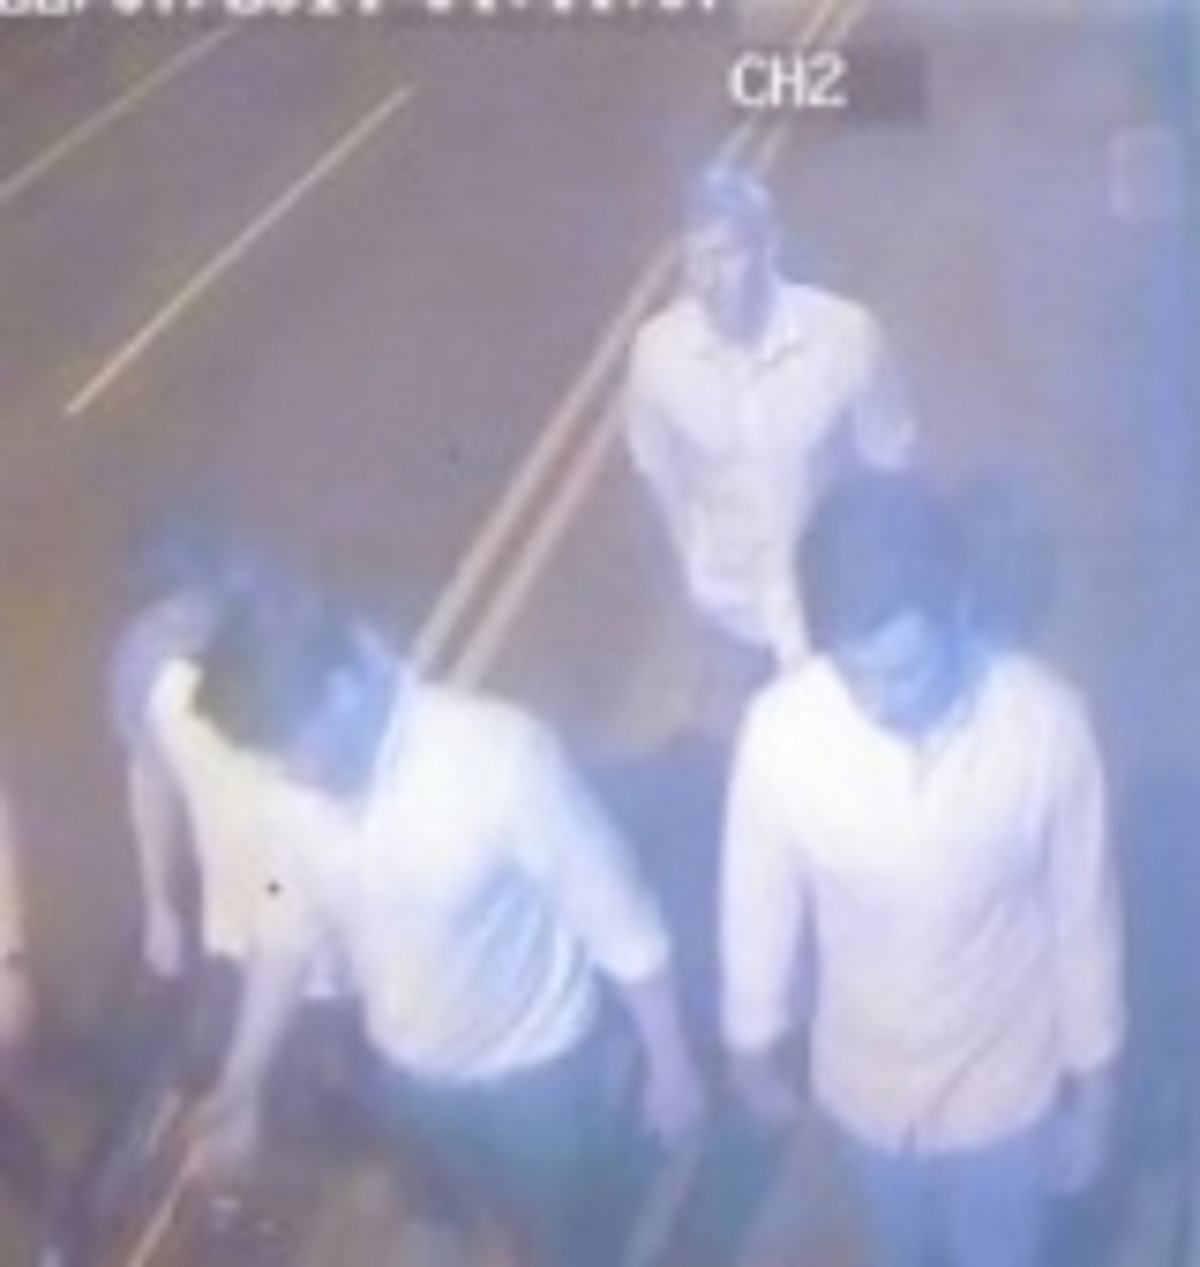 Police are appealing for information after a man was assaulted in Worcester